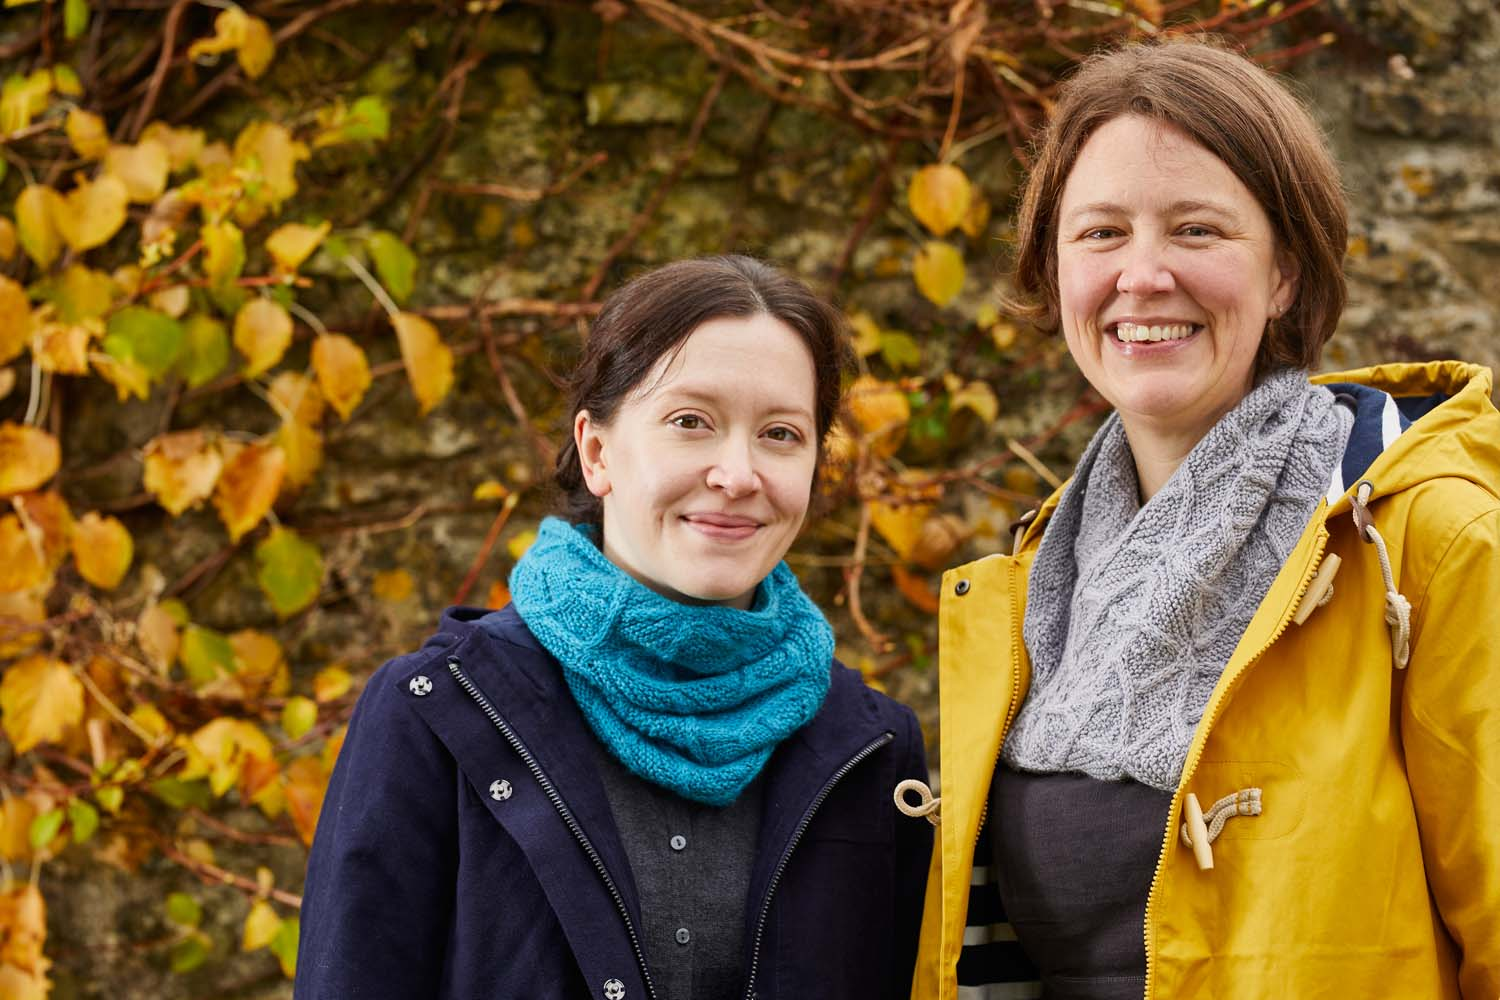 Lucy is wearing the short cowl knitted in shade Anemoi and I am wearing the longer version, knitted in Minos (pale grey). Image © Jesse Wild.